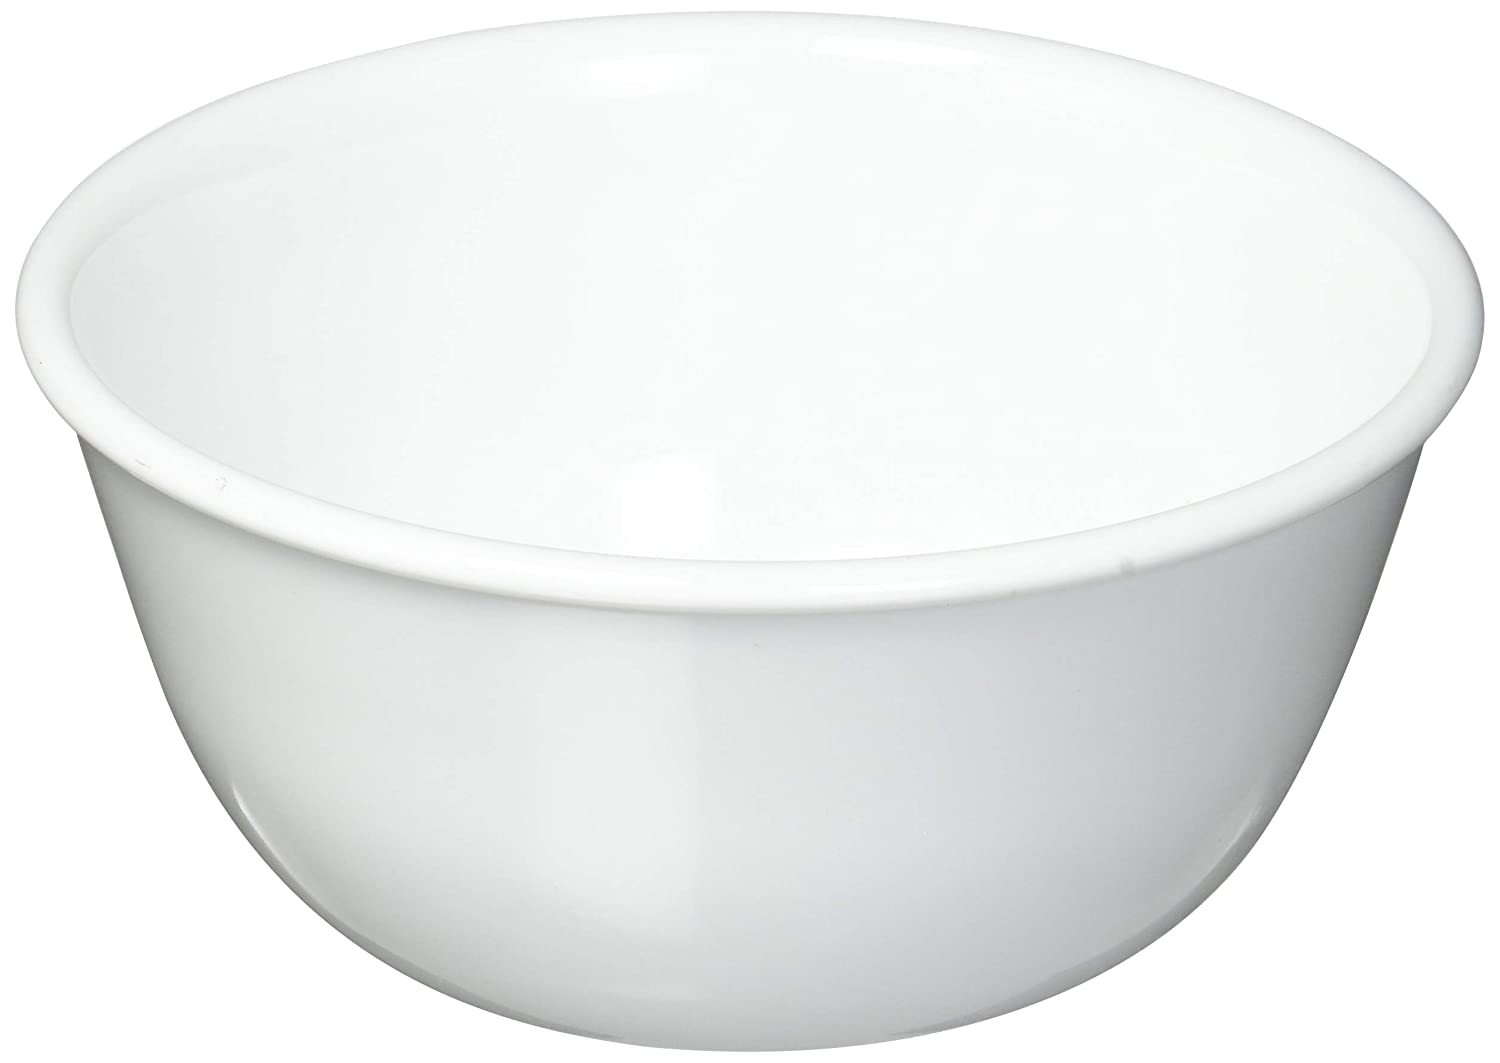 Corelle Dessert Bowl Winter Frost White 12 Oz(8 bowls)